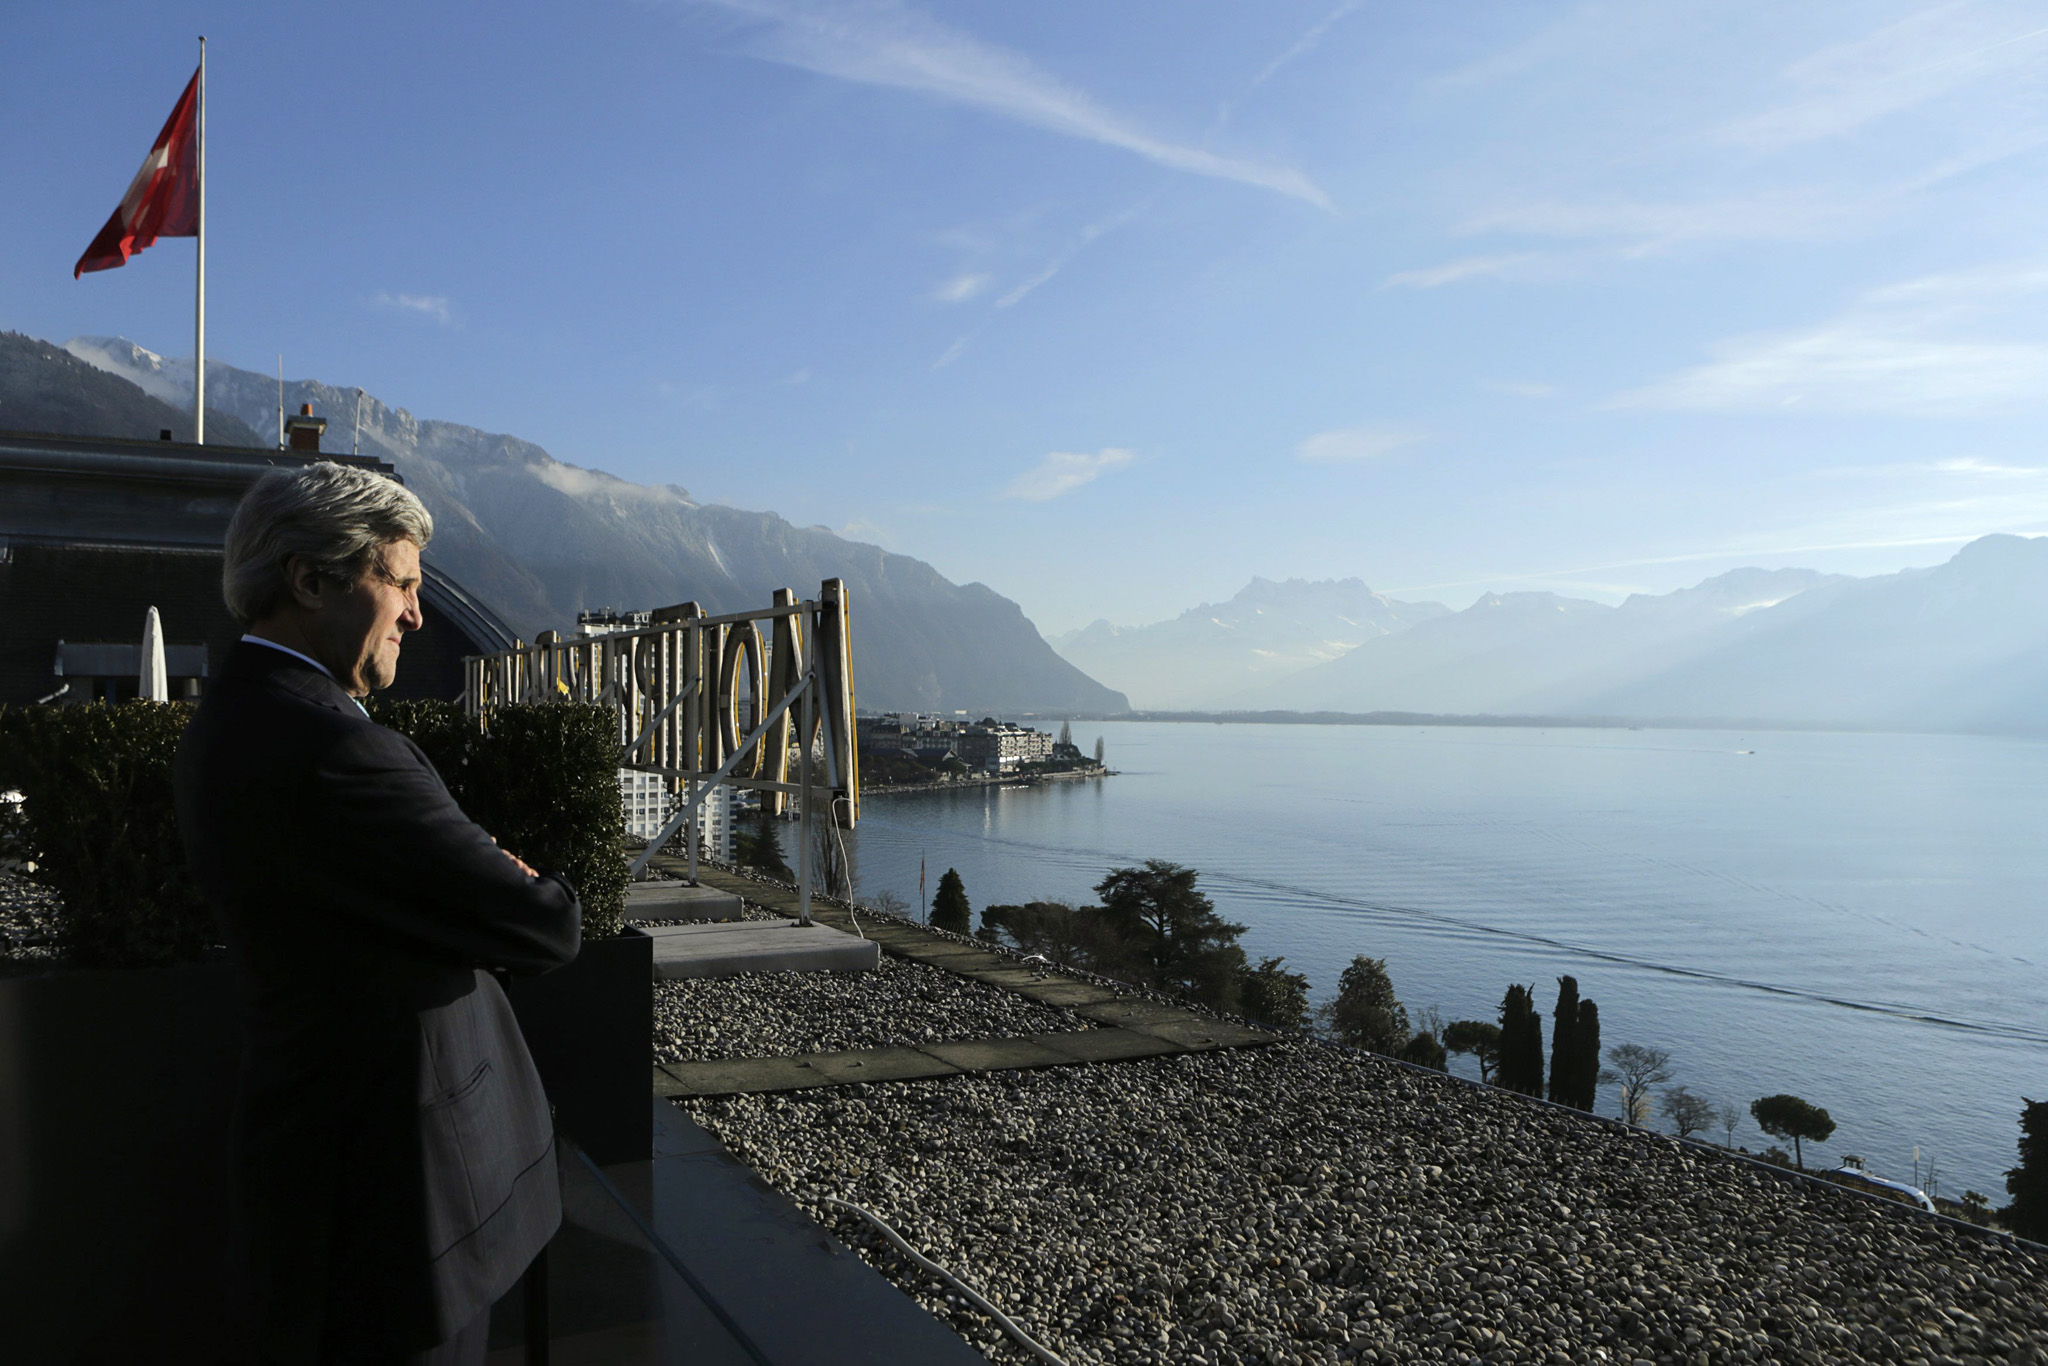 United States Secretary of State John Kerry looks out at Lake Geneva outside of his meeting room in Switzerland...United States Secretary of State John Kerry looks out at Lake Geneva outside of his meeting room in Montreux January 22, 2014.  Syria's government and its enemies come face to face on Wednesday for the first time as world powers try to set aside their own differences and push for an end to three years of civil war that is unsettling the entire Middle East.     REUTERS/Gary Cameron